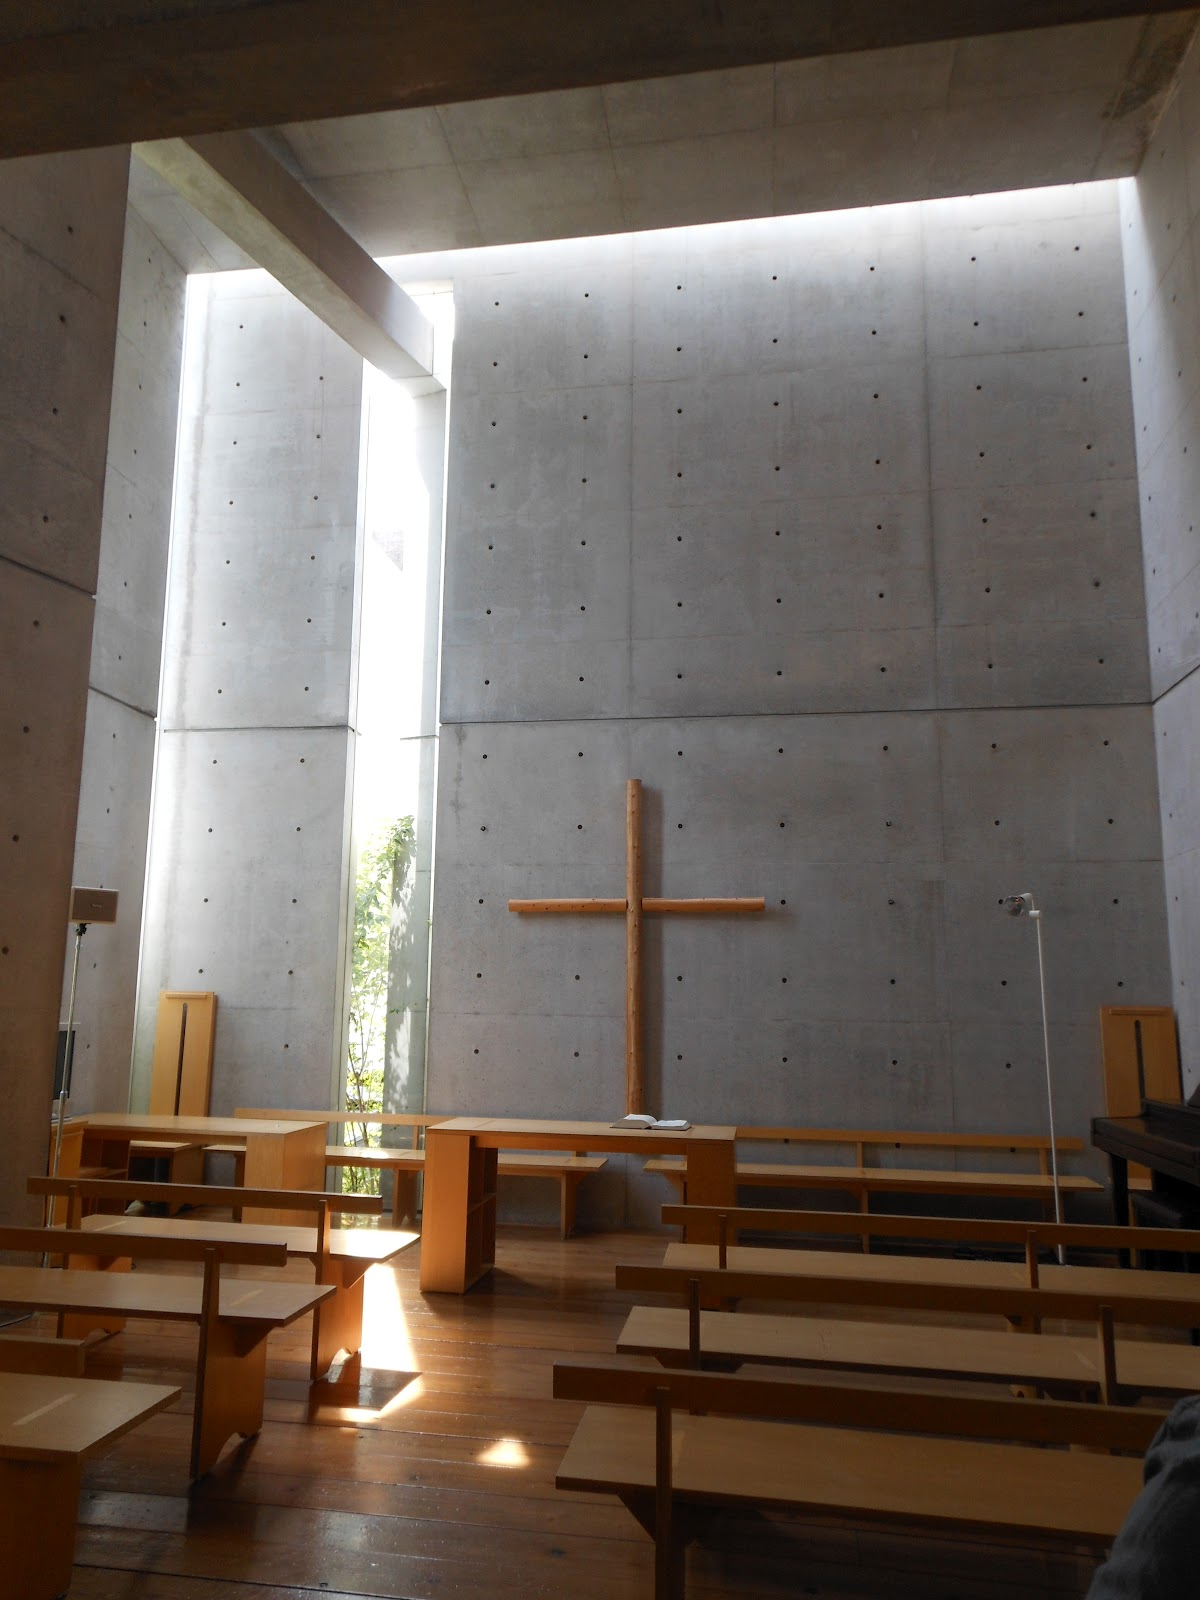 Lr 6 Judy's Japan Journey: Tadao Ando's Church Of The Light